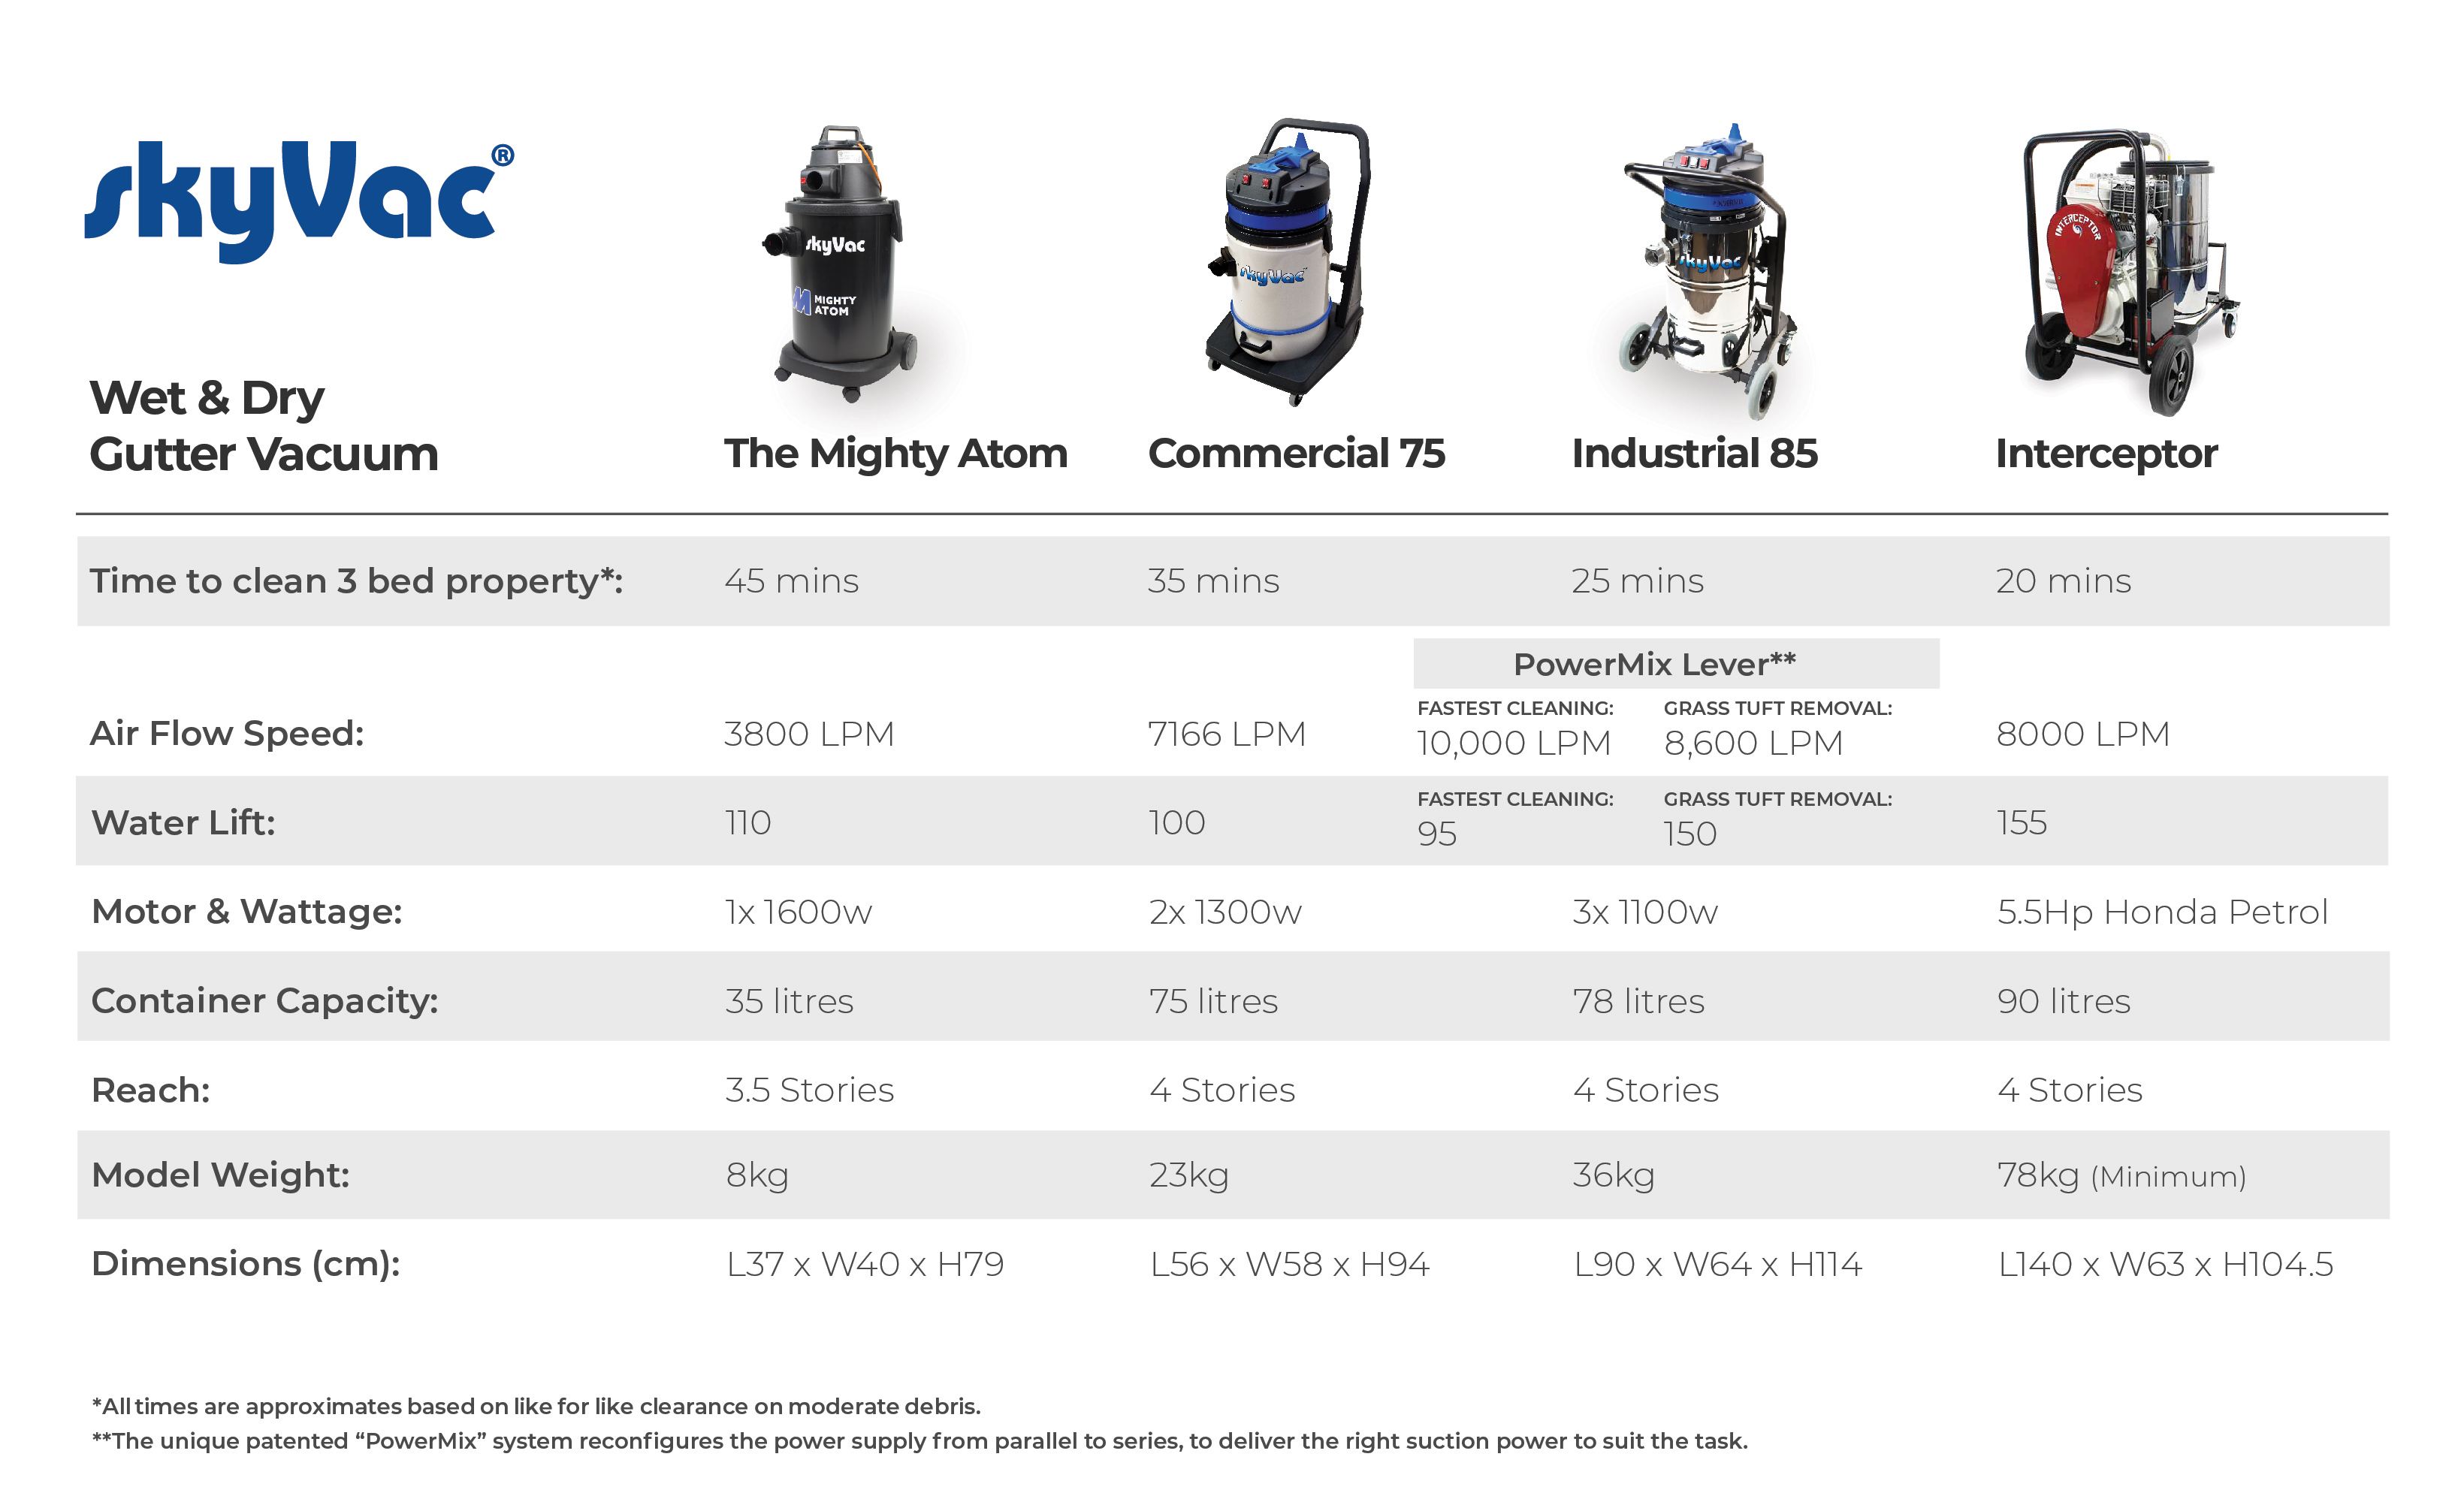 skyVac gutter cleaning machines comparison chart